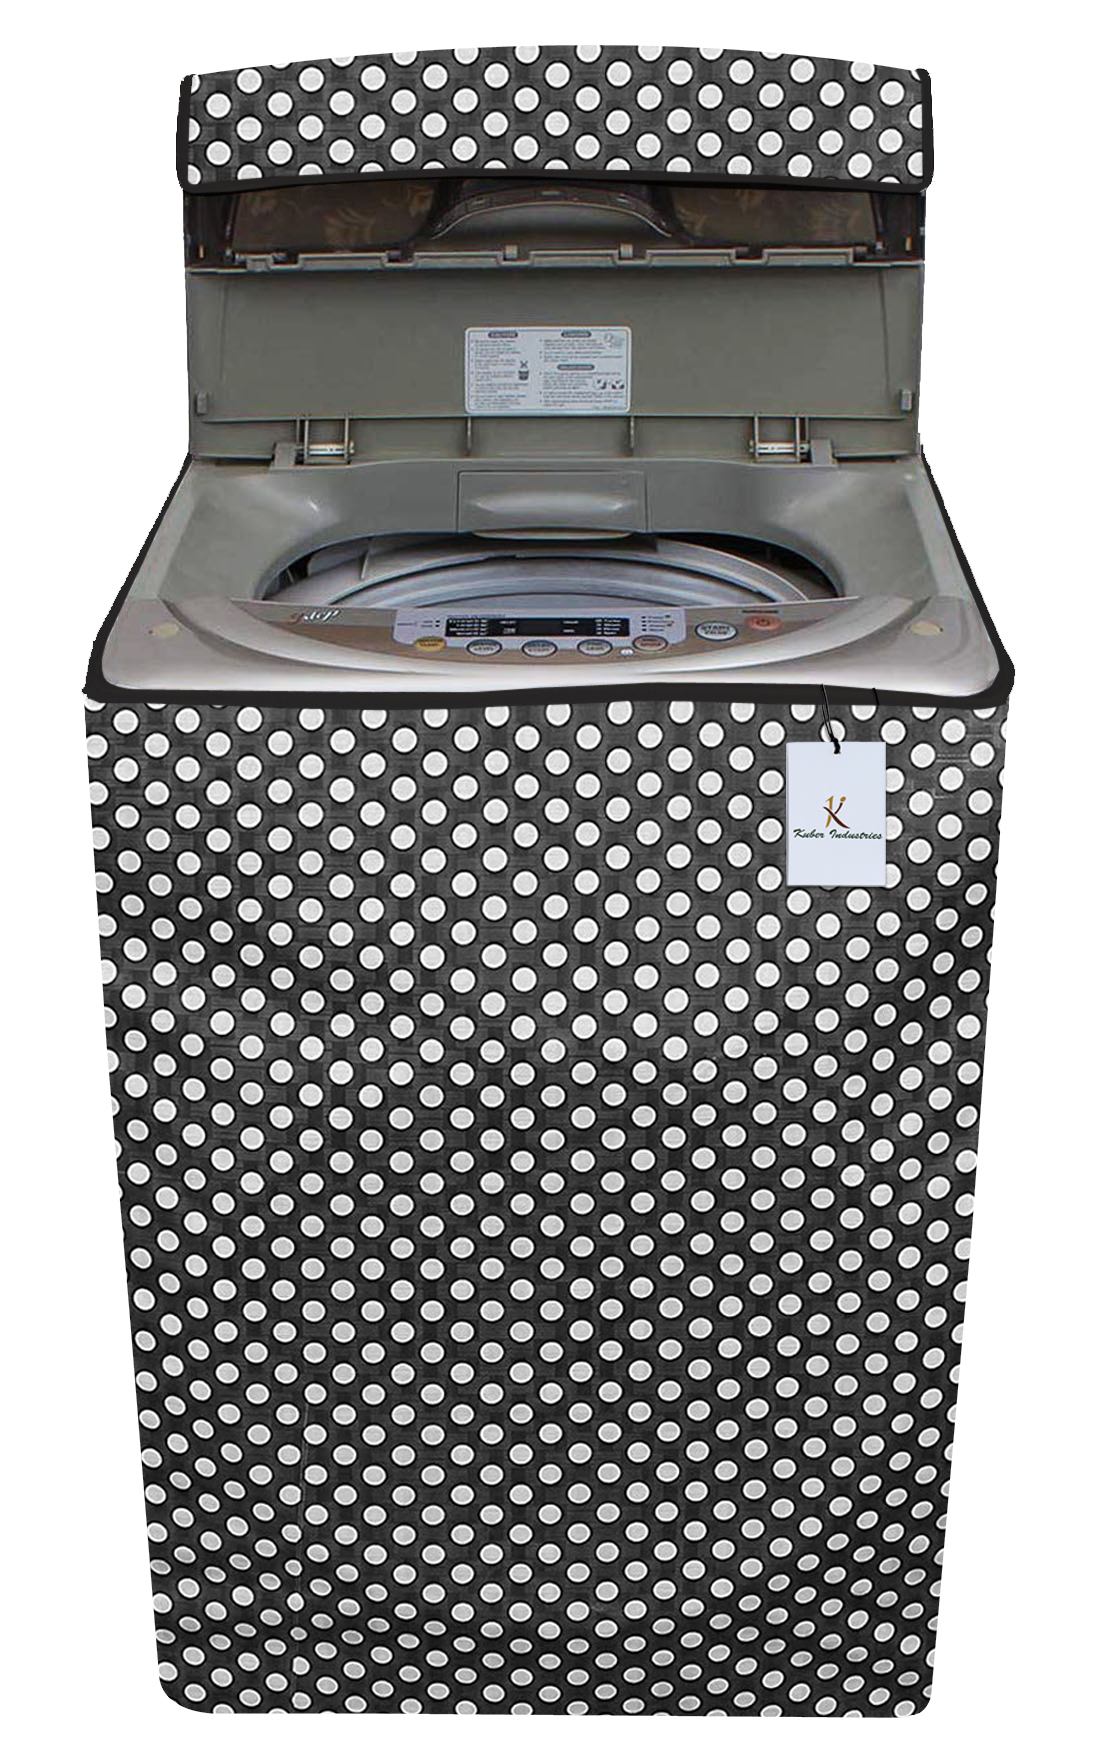 Kuber Industries Dots Design PVC Top Load Fully Automatic Washing Machine Cover With Back Hole (Grey)